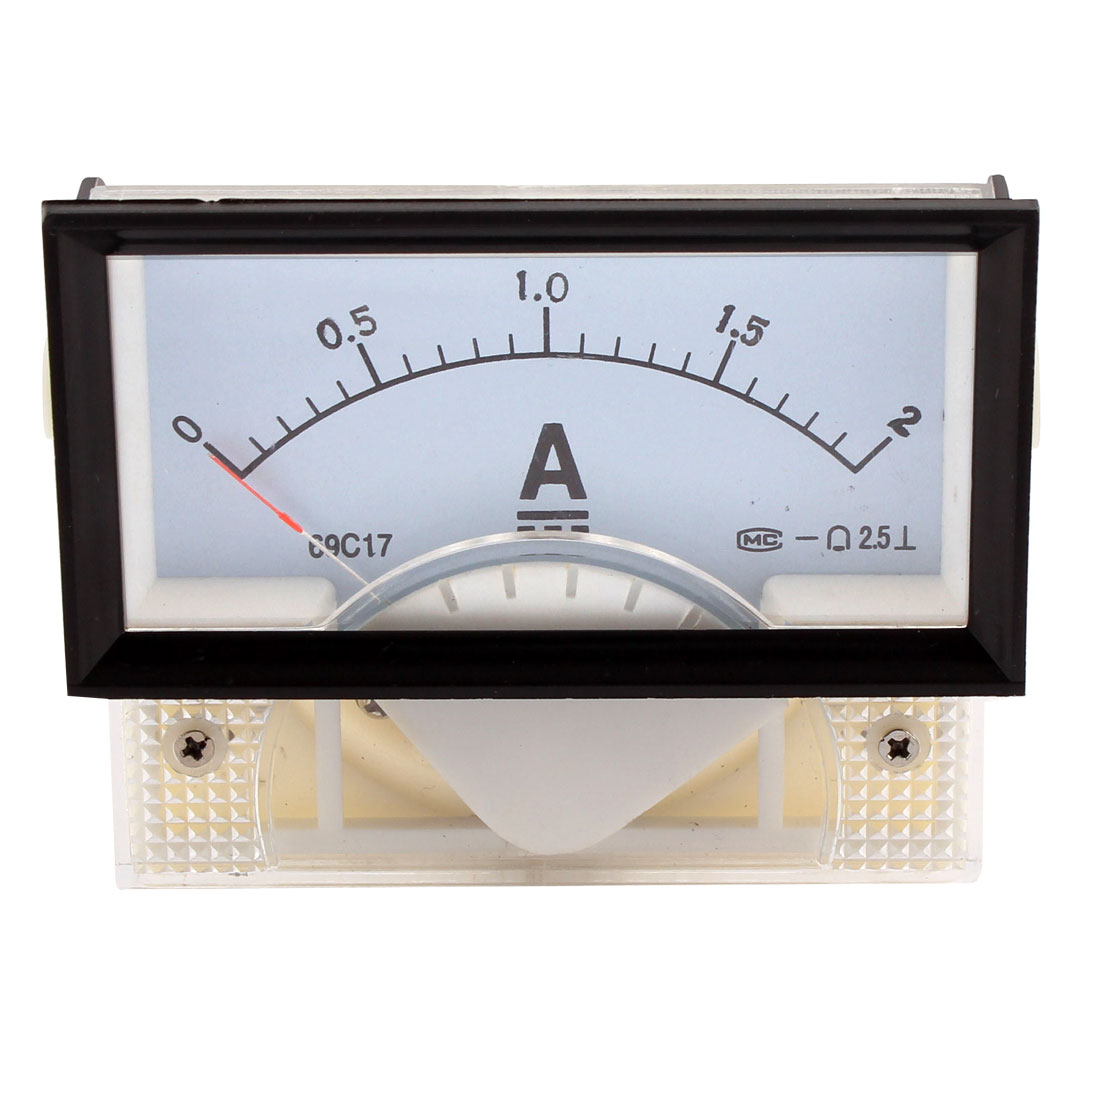 69C17 DC 0-2A Rectangle Panel Gauge Meter Analog Ampere Ammeter Class 2.5